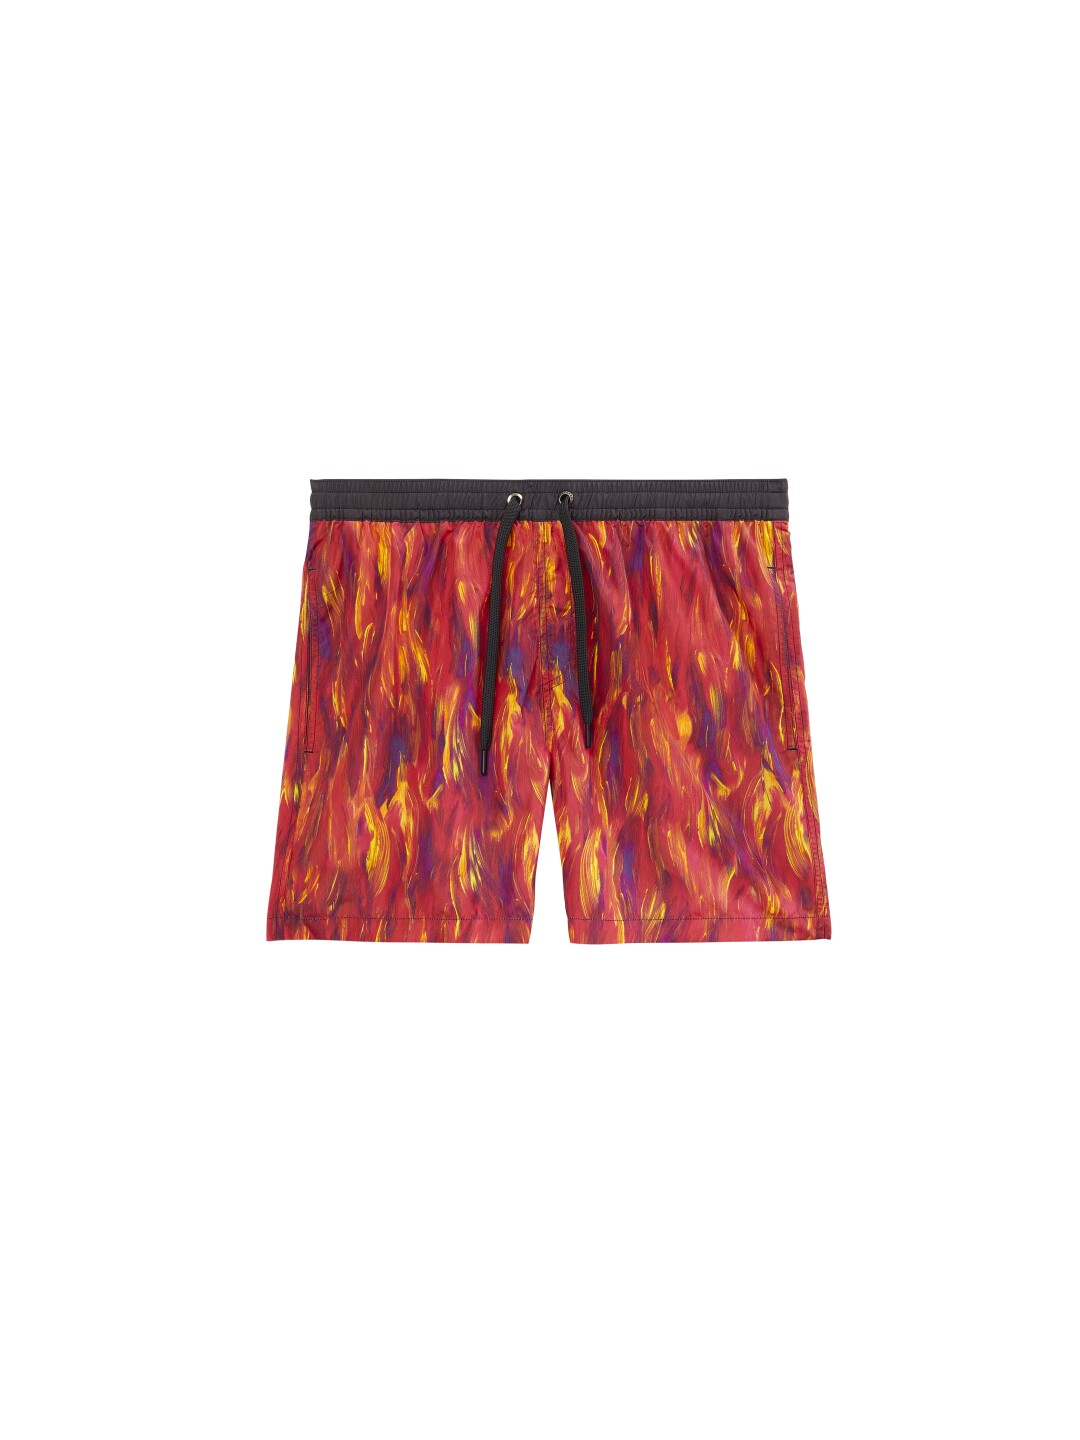 Swim trunks in an abstract fire print